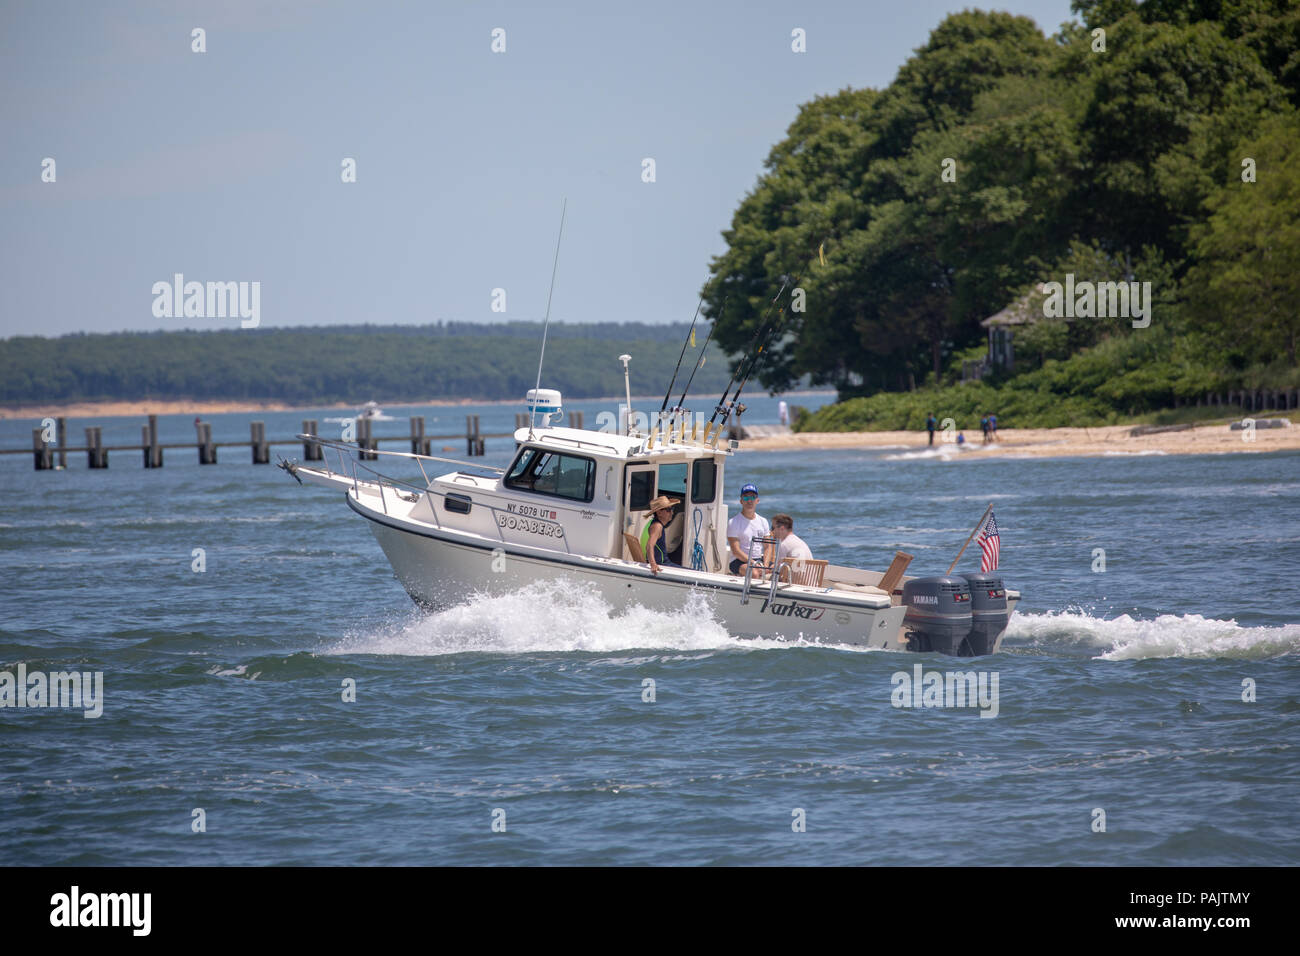 people on a motor boat near North Haven, NY - Stock Image